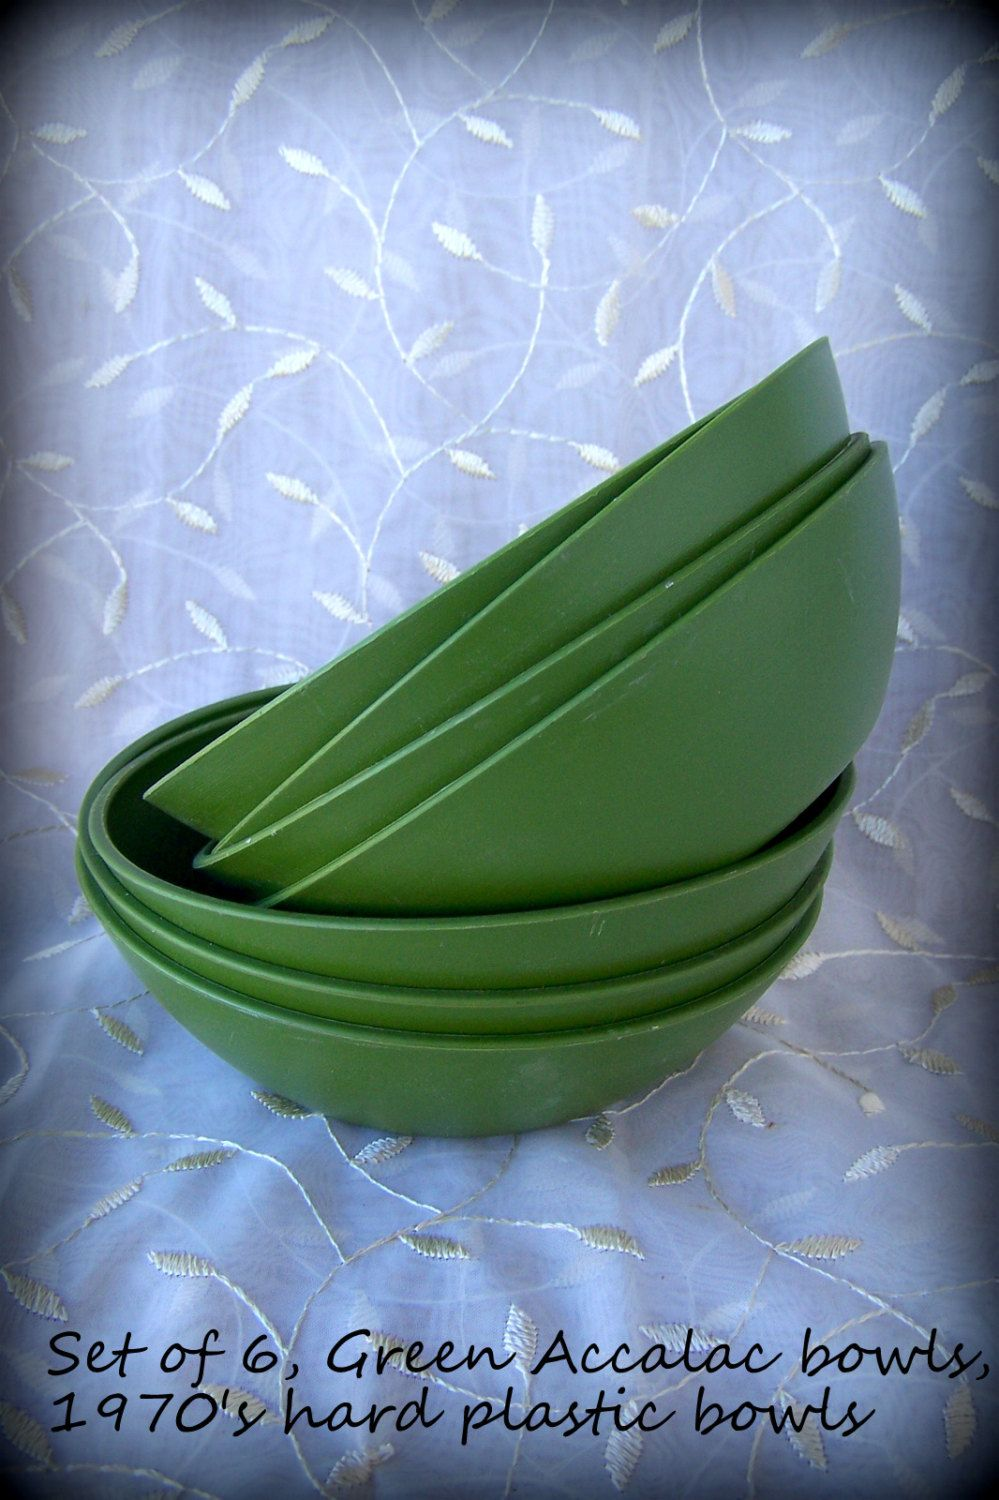 Durable soup bowls 1970's Accalac bowls Green hard plastic with brushed texture on outside and a smooth finished  Vintage kitchenware by STUFFEZES on Etsy